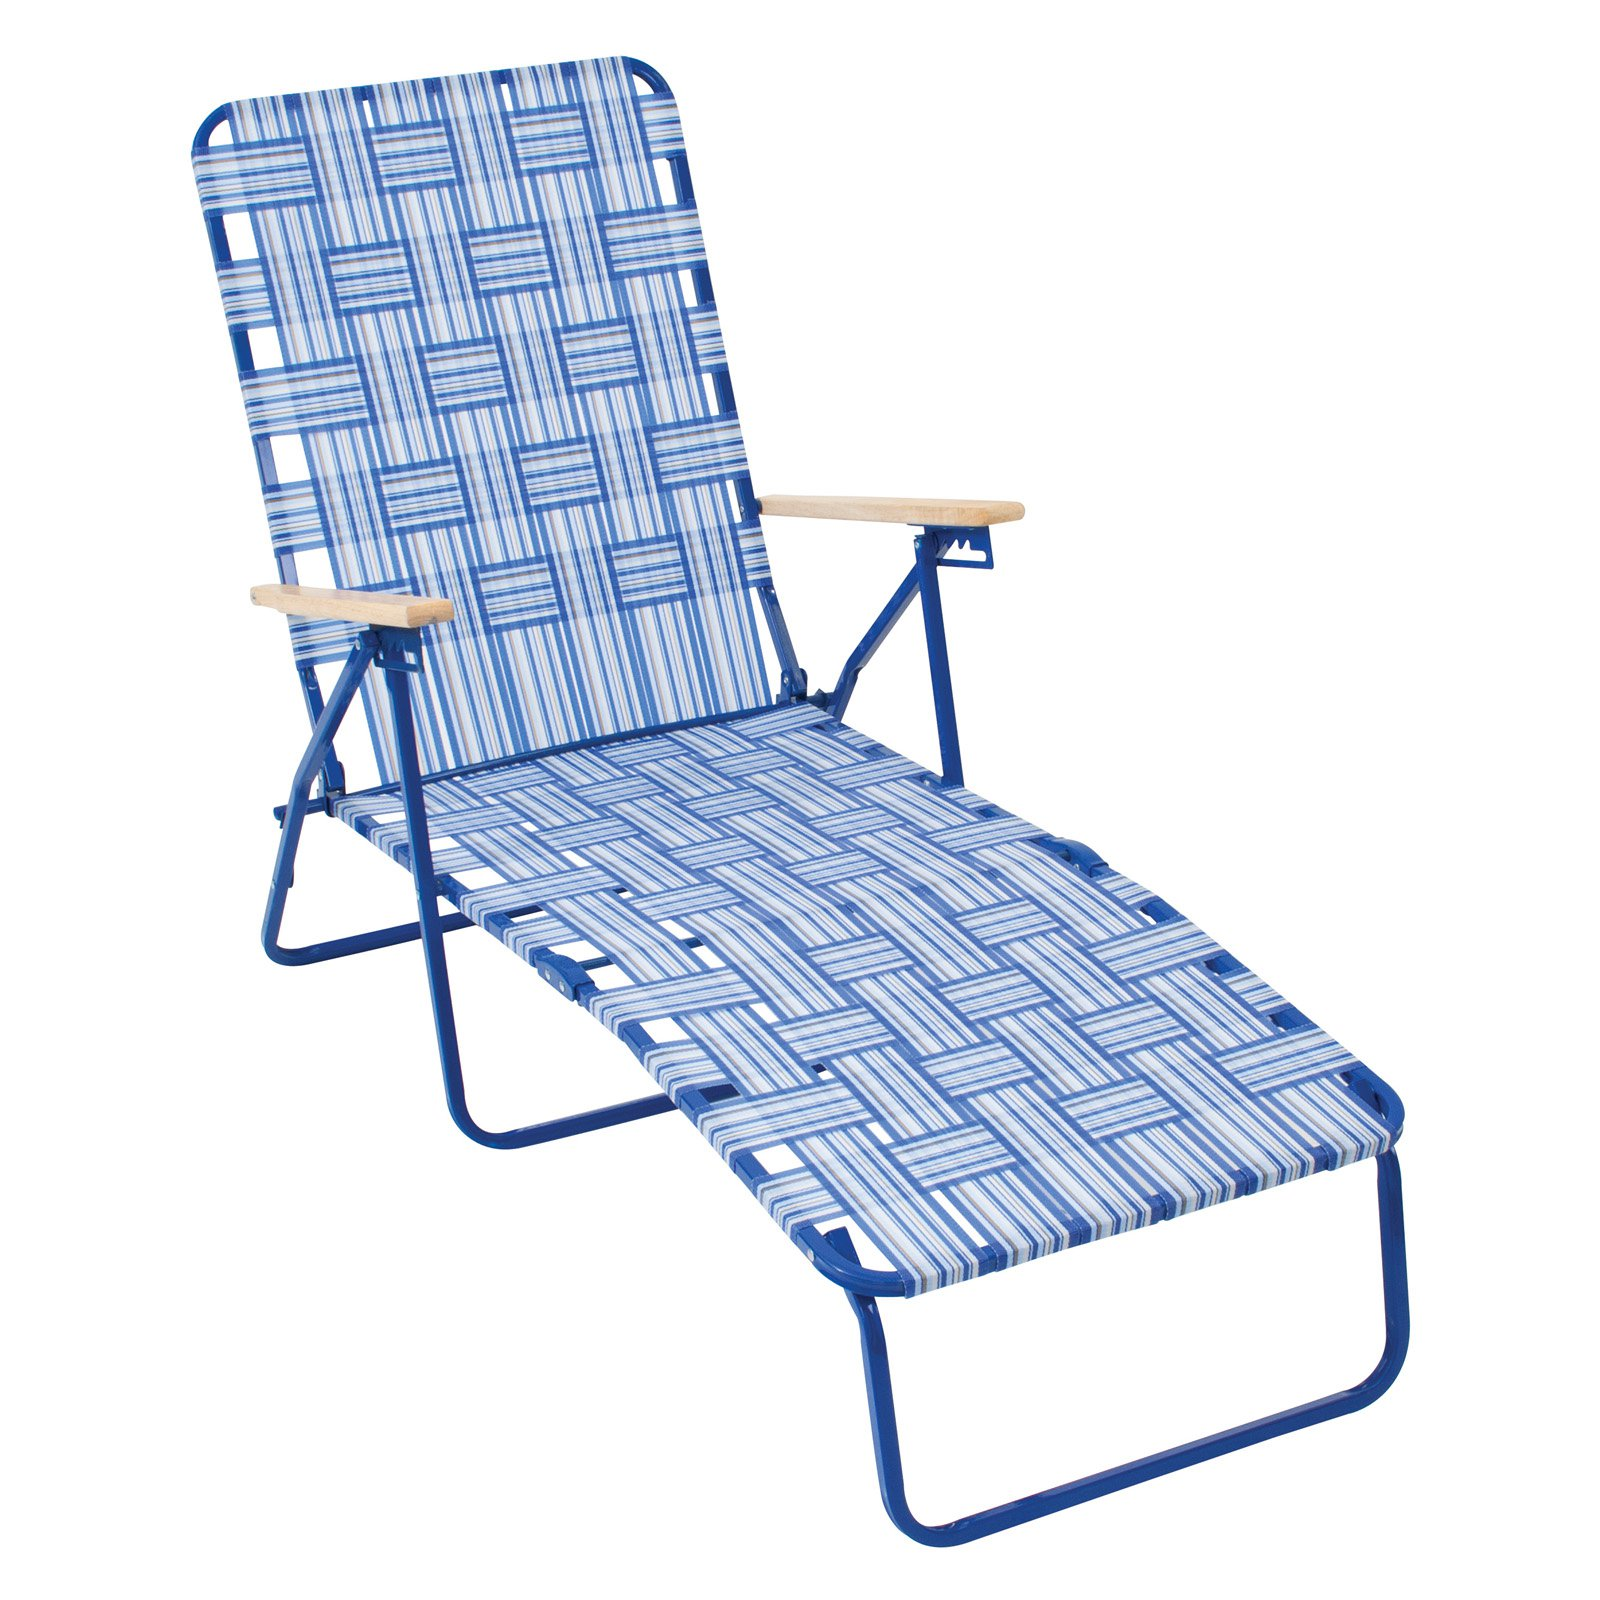 Folding Lounge Chair Rio Brands Rio Deluxe Folding Web Chaise Lounge Chair